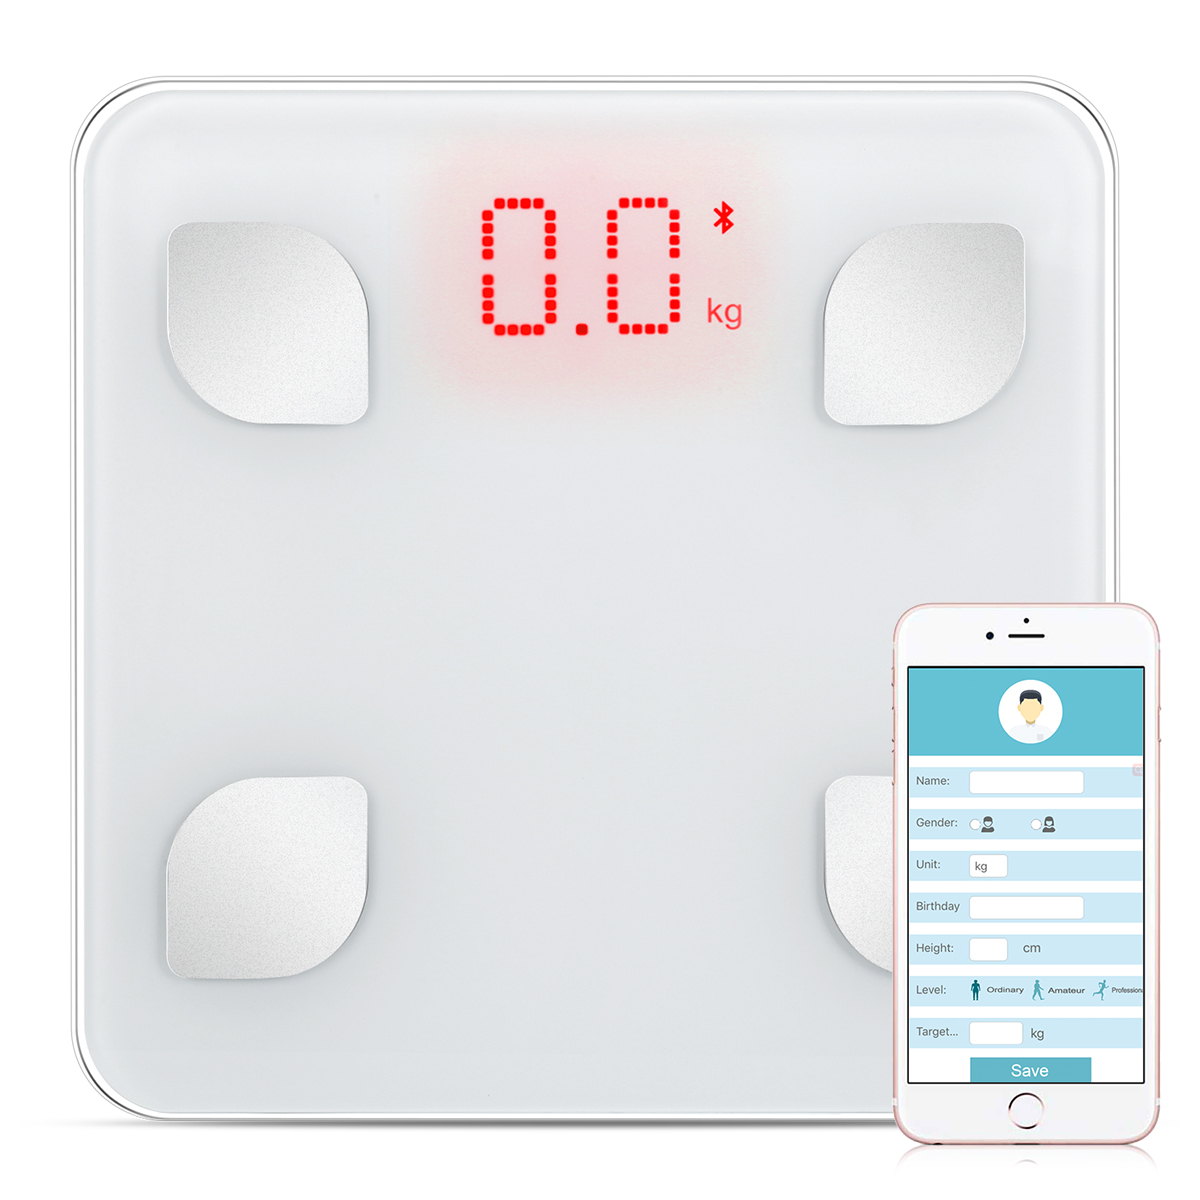 OVONNI BT Smart Body Fat Scale - Digitl Bathroom Weight Scale with iOS & Android App Cordless Body Fat Scale for Body Weight, Body Fat%, BMI, Water, Muscle Mass, 330 lbs